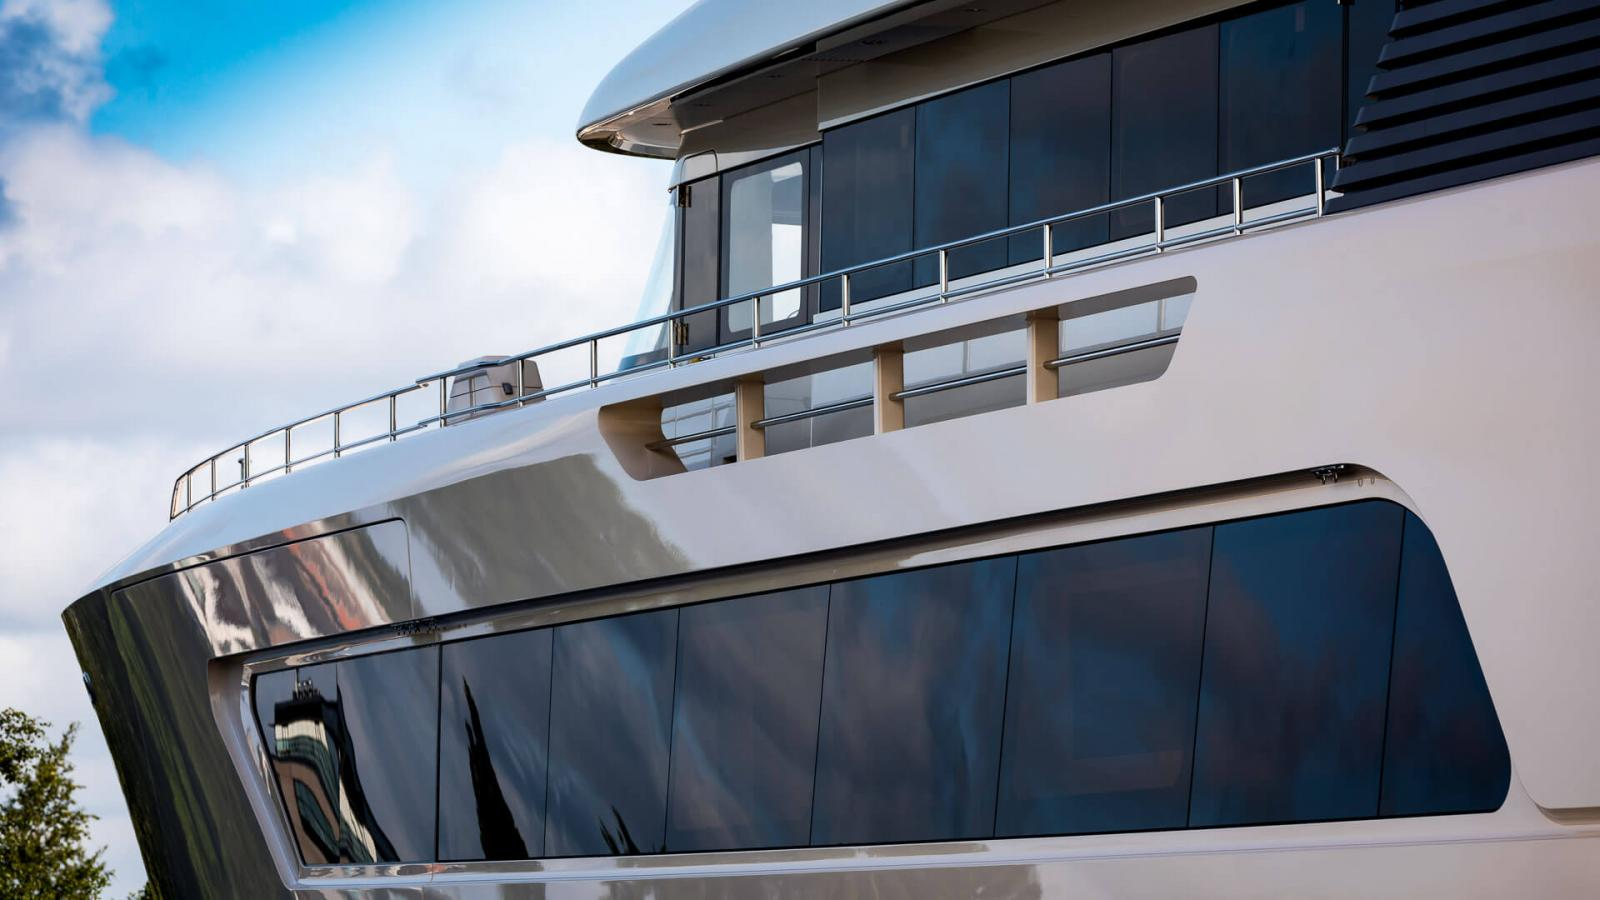 Feadship Hull 696 Yacht - Close Up